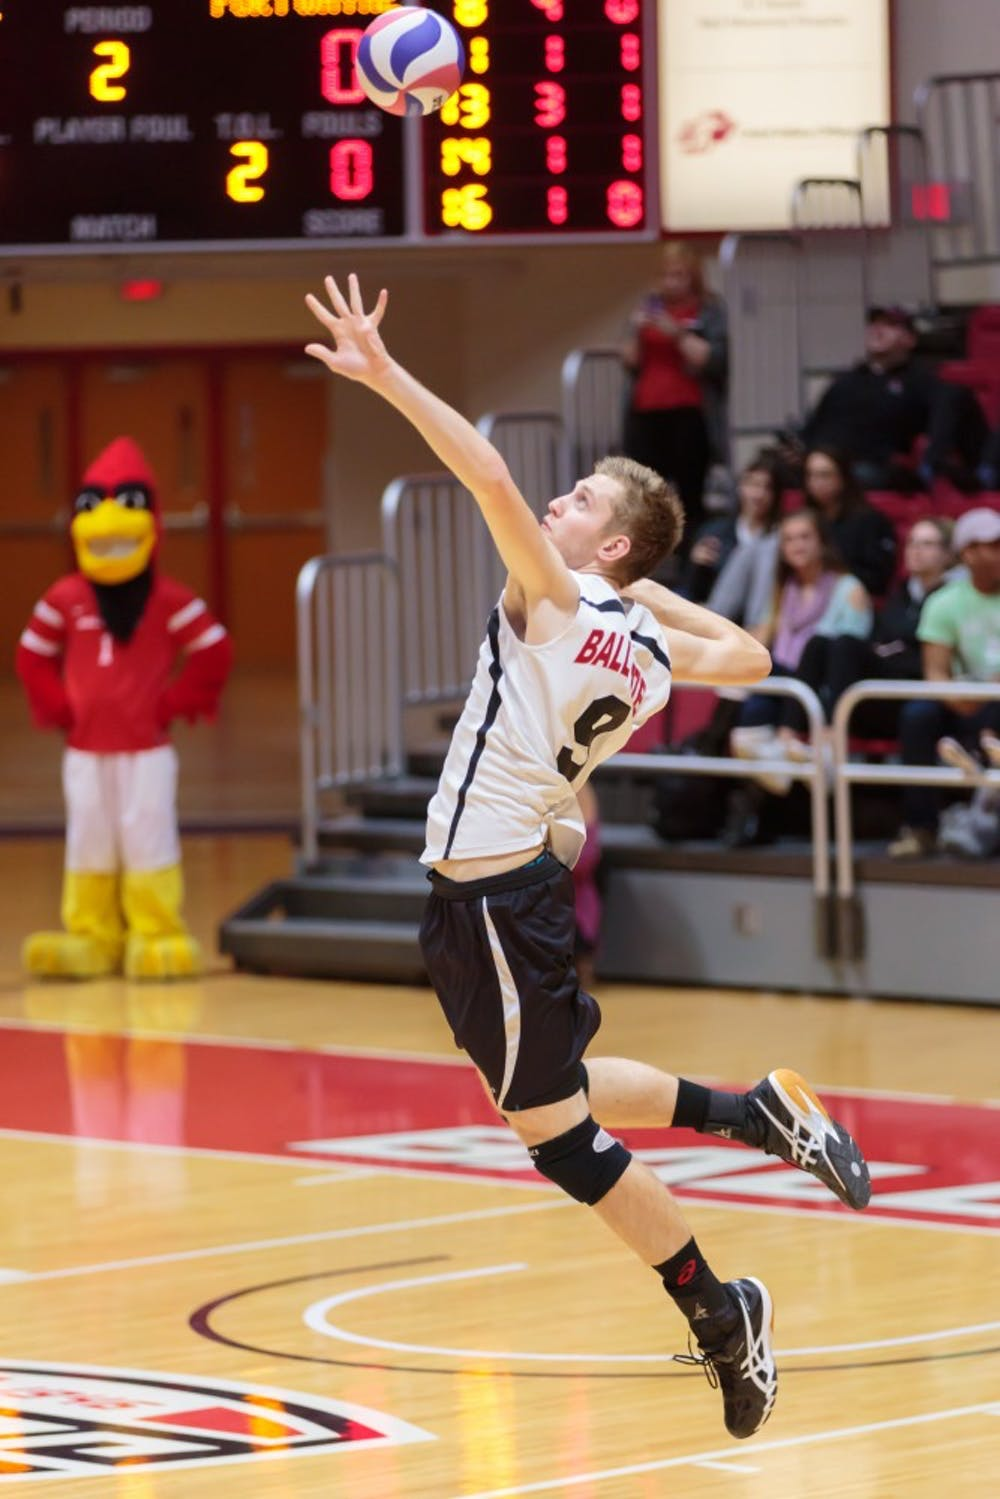 <p>Then-sophomore middle attacker Parker Swartz serves the ball during the game against Fort Wayne on Feb. 7 in Worthen Arena. The Cardinals won 3-0 against the Mastodons. <strong>Kyle Crawford, DN</strong></p>